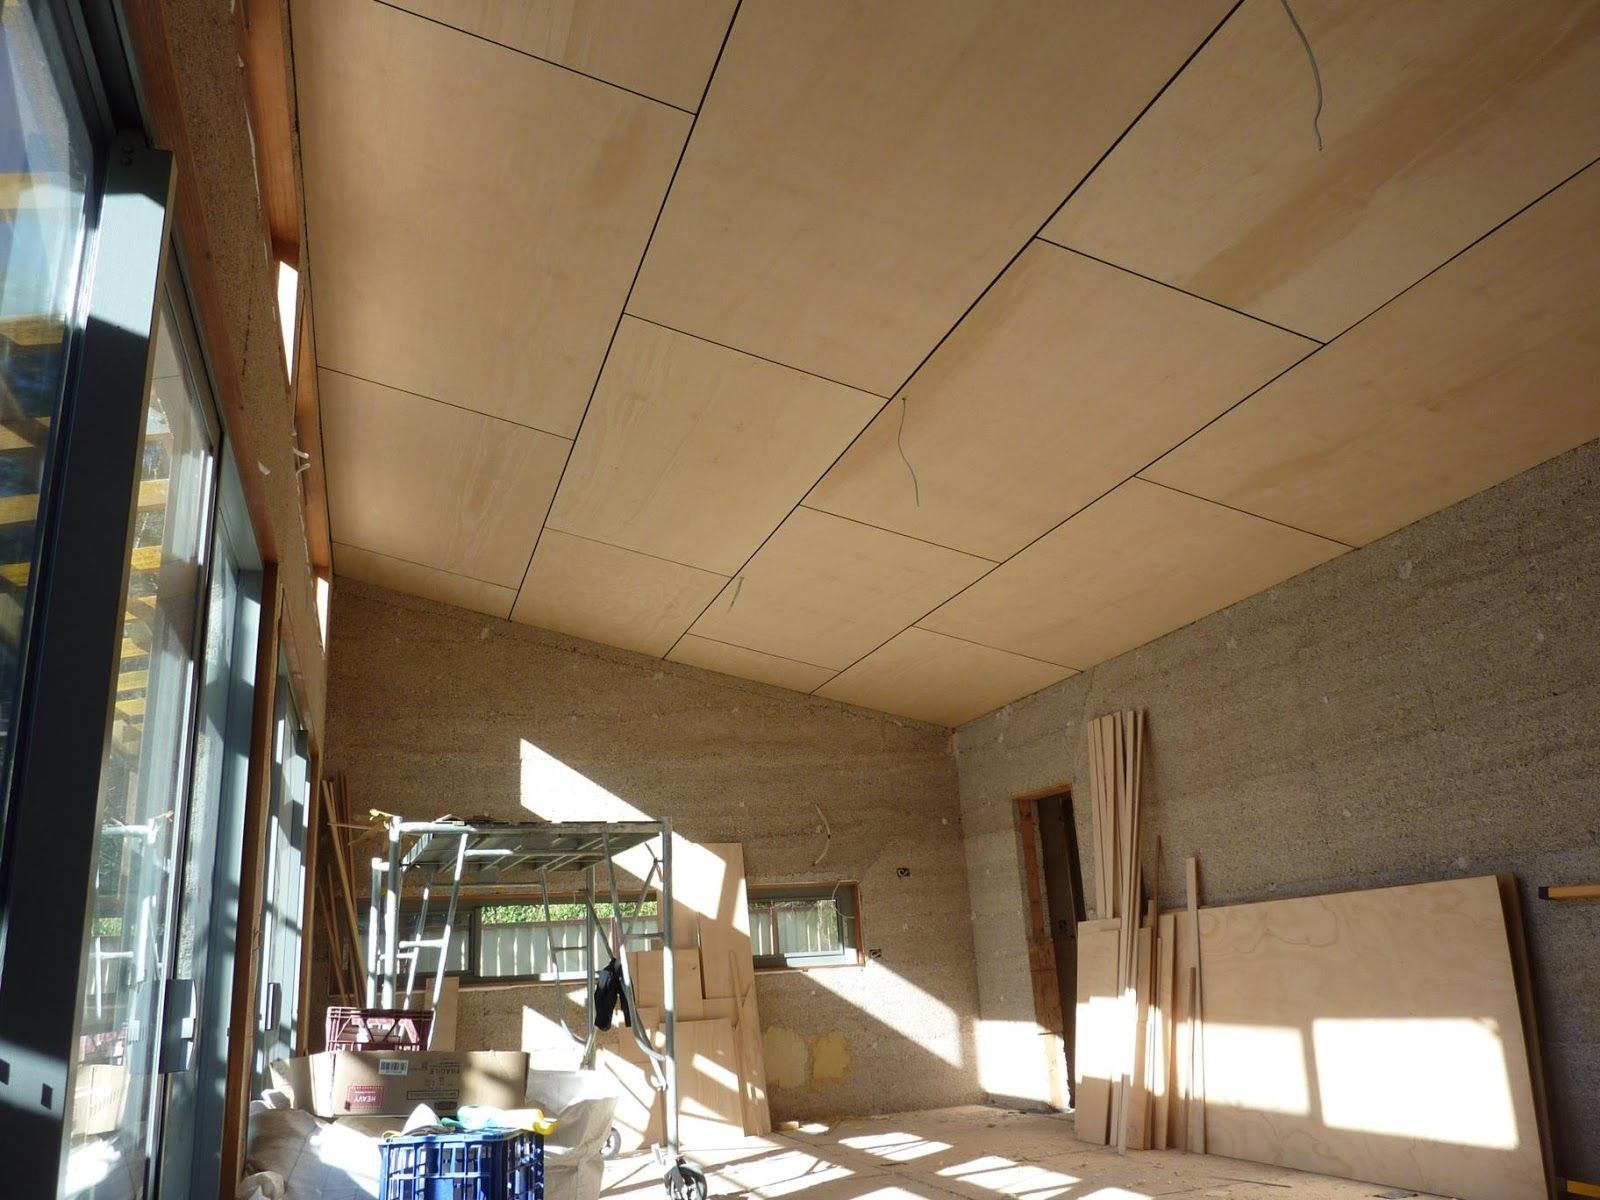 culburra hemp house: ceilings and internal walls completed | dream